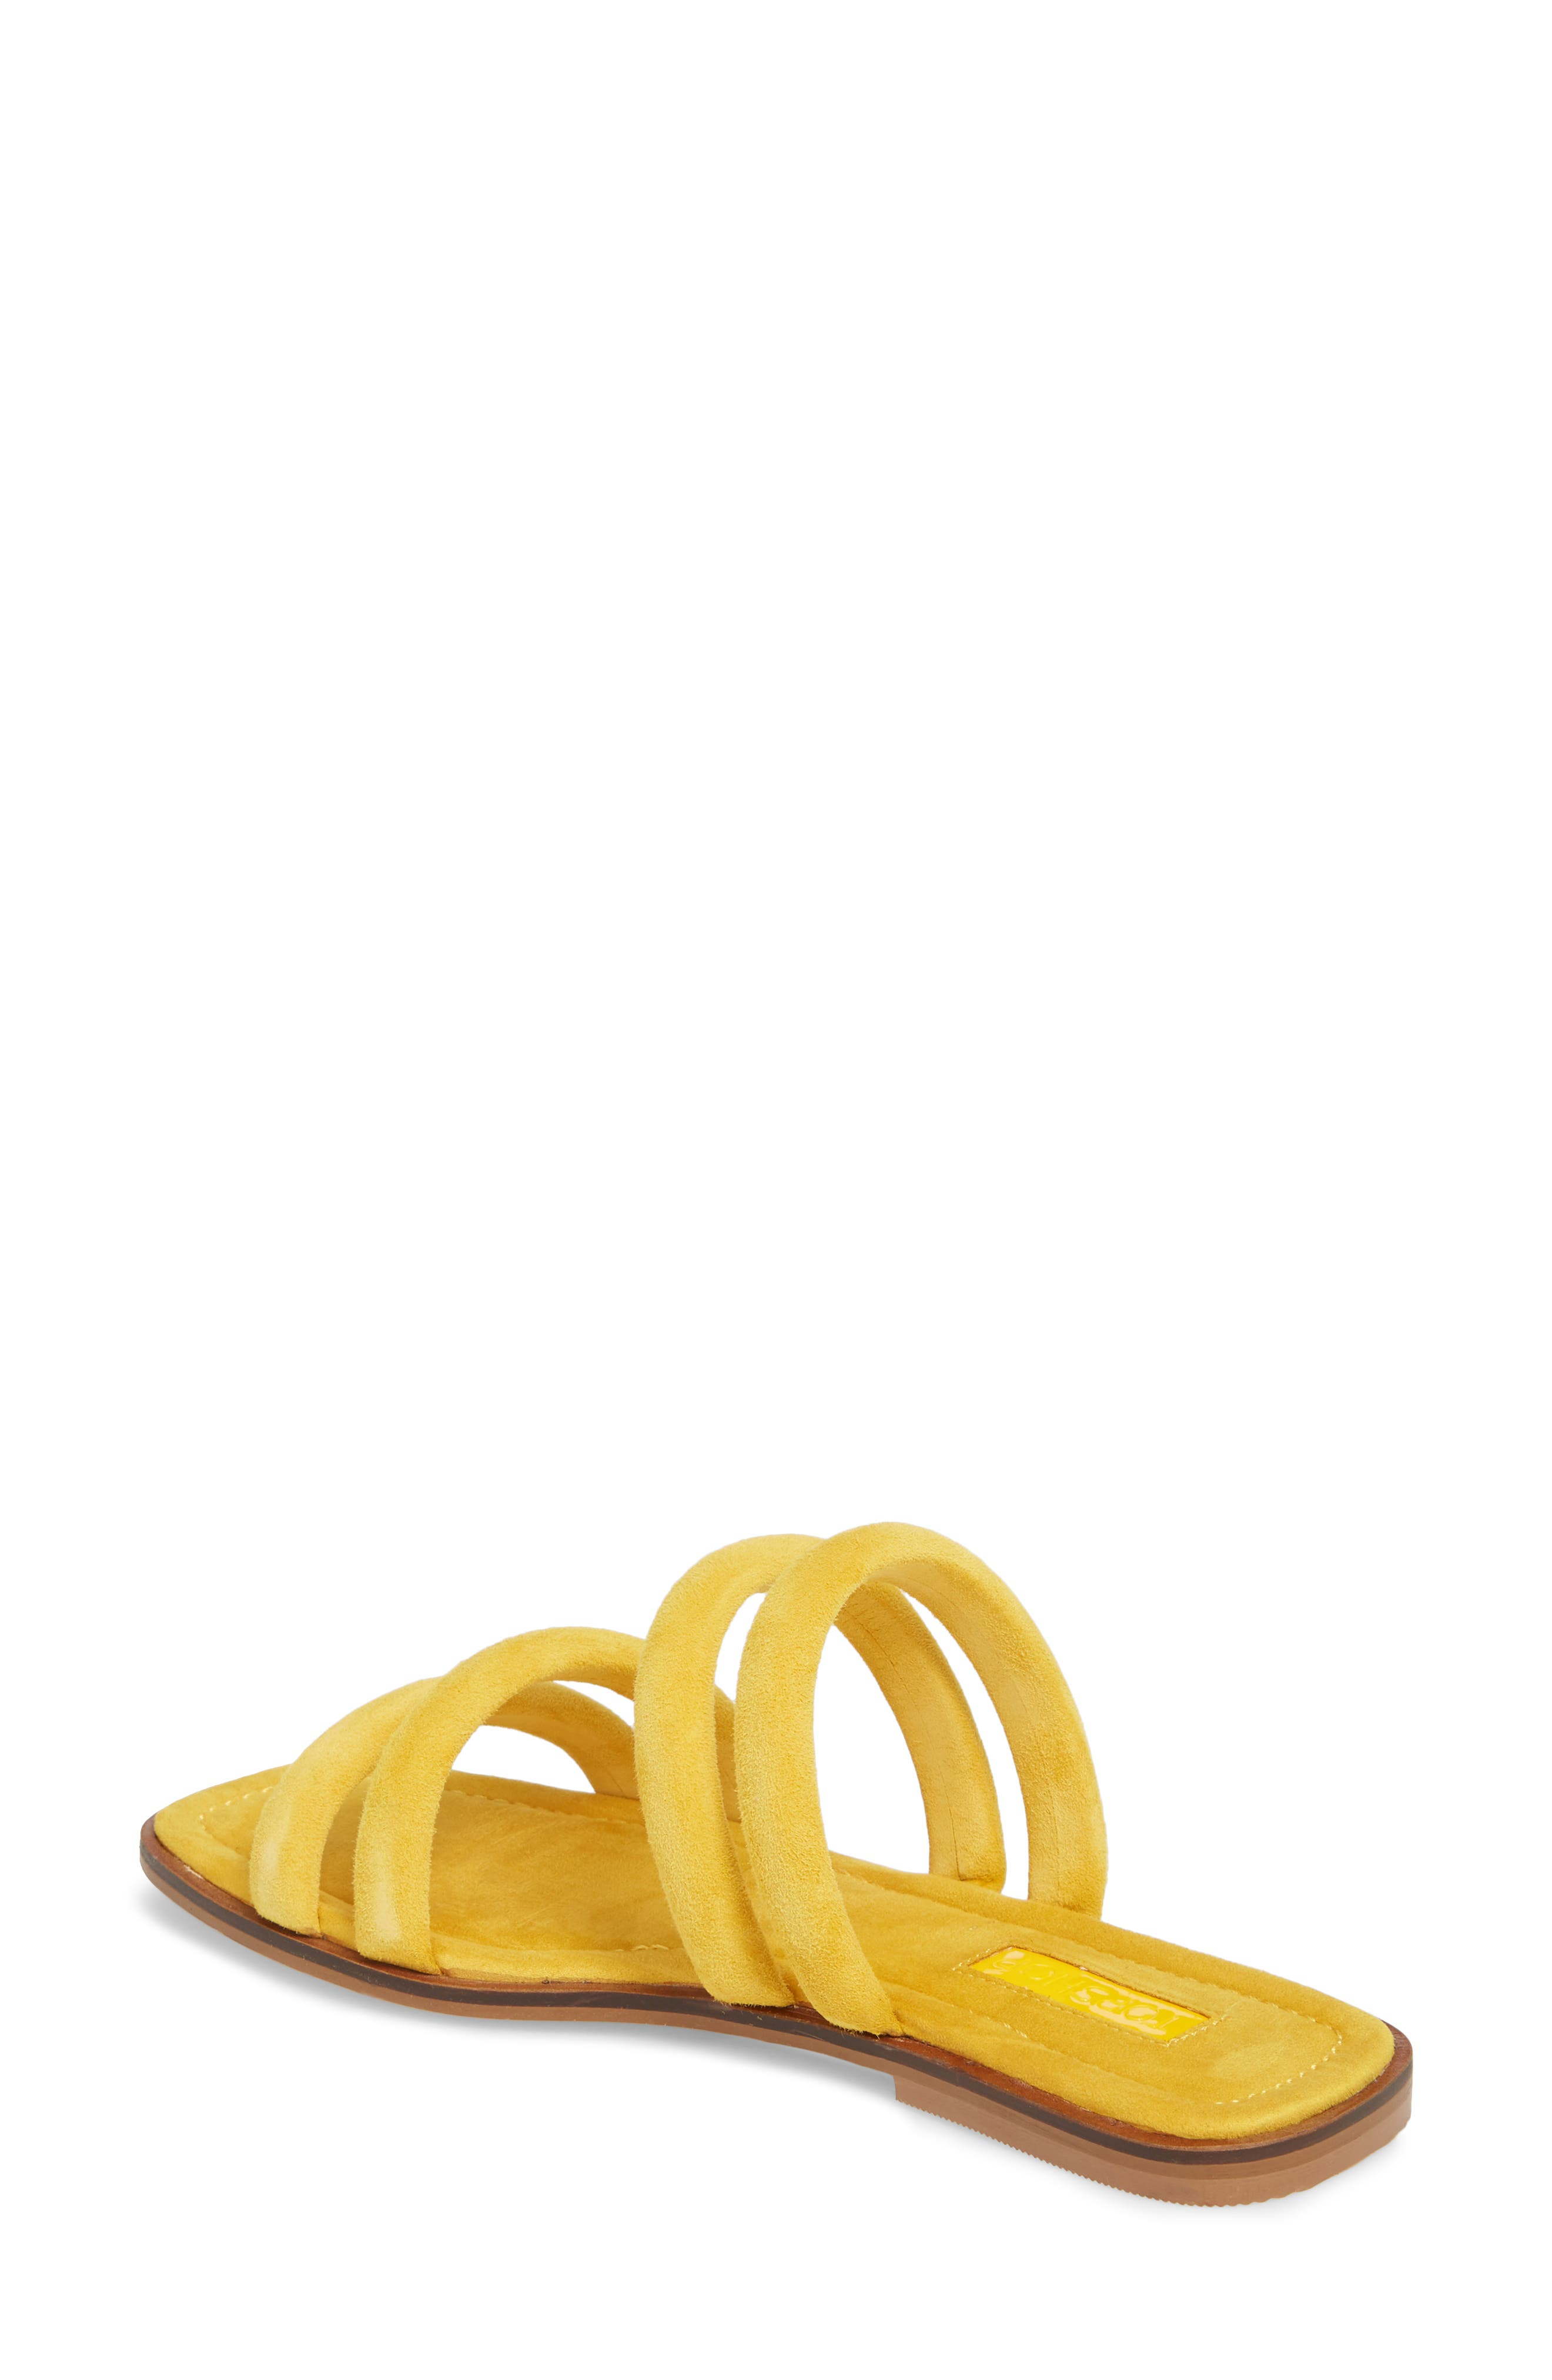 Fever Strappy Sandal,                             Alternate thumbnail 2, color,                             Yellow